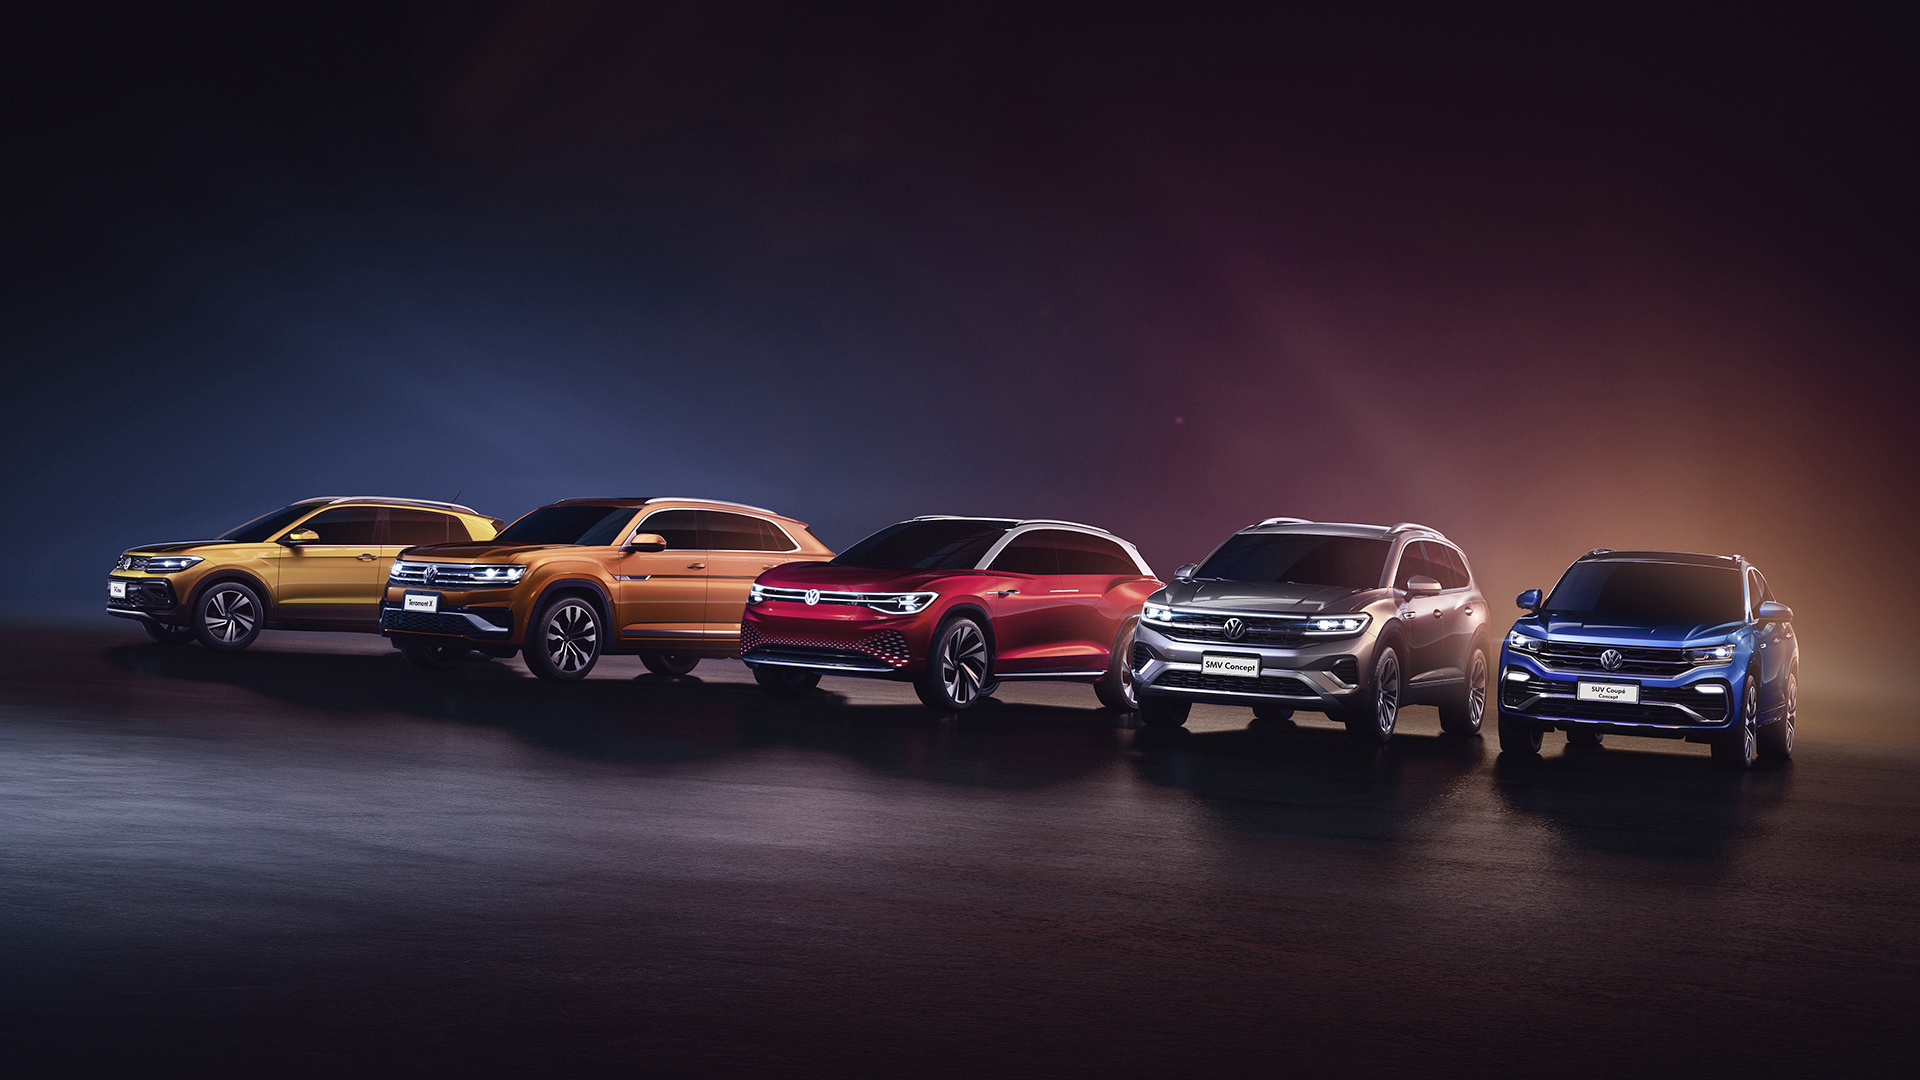 VW Concept cars for china full lineup